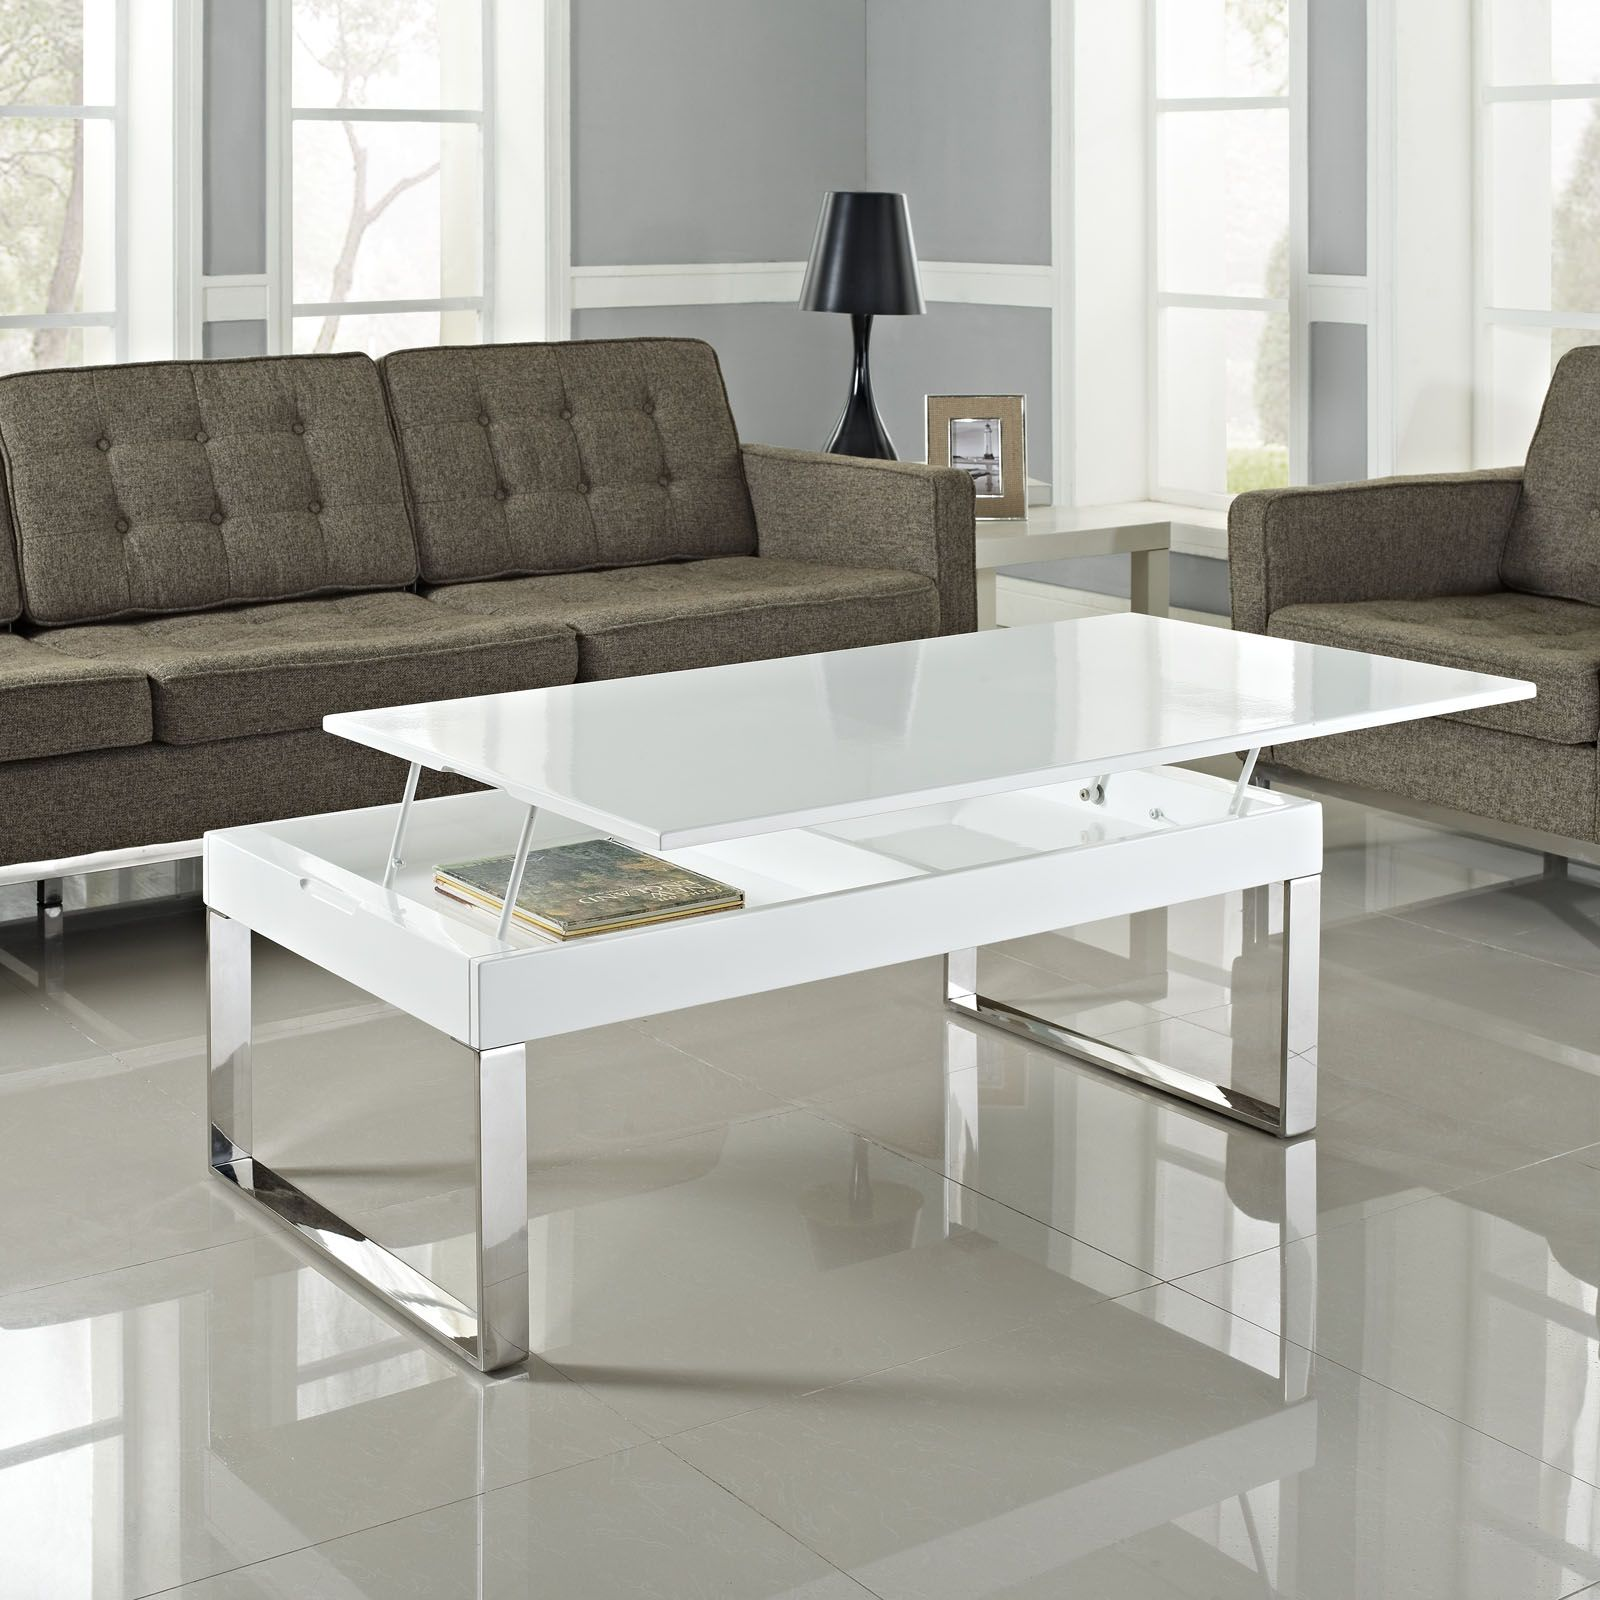 Modway Gloss Coffee Table Eei 662 This Can Be Used For Dining In Front Of Sofa Home Decor Mesas Muebles Decoracion Salones [ 1600 x 1600 Pixel ]